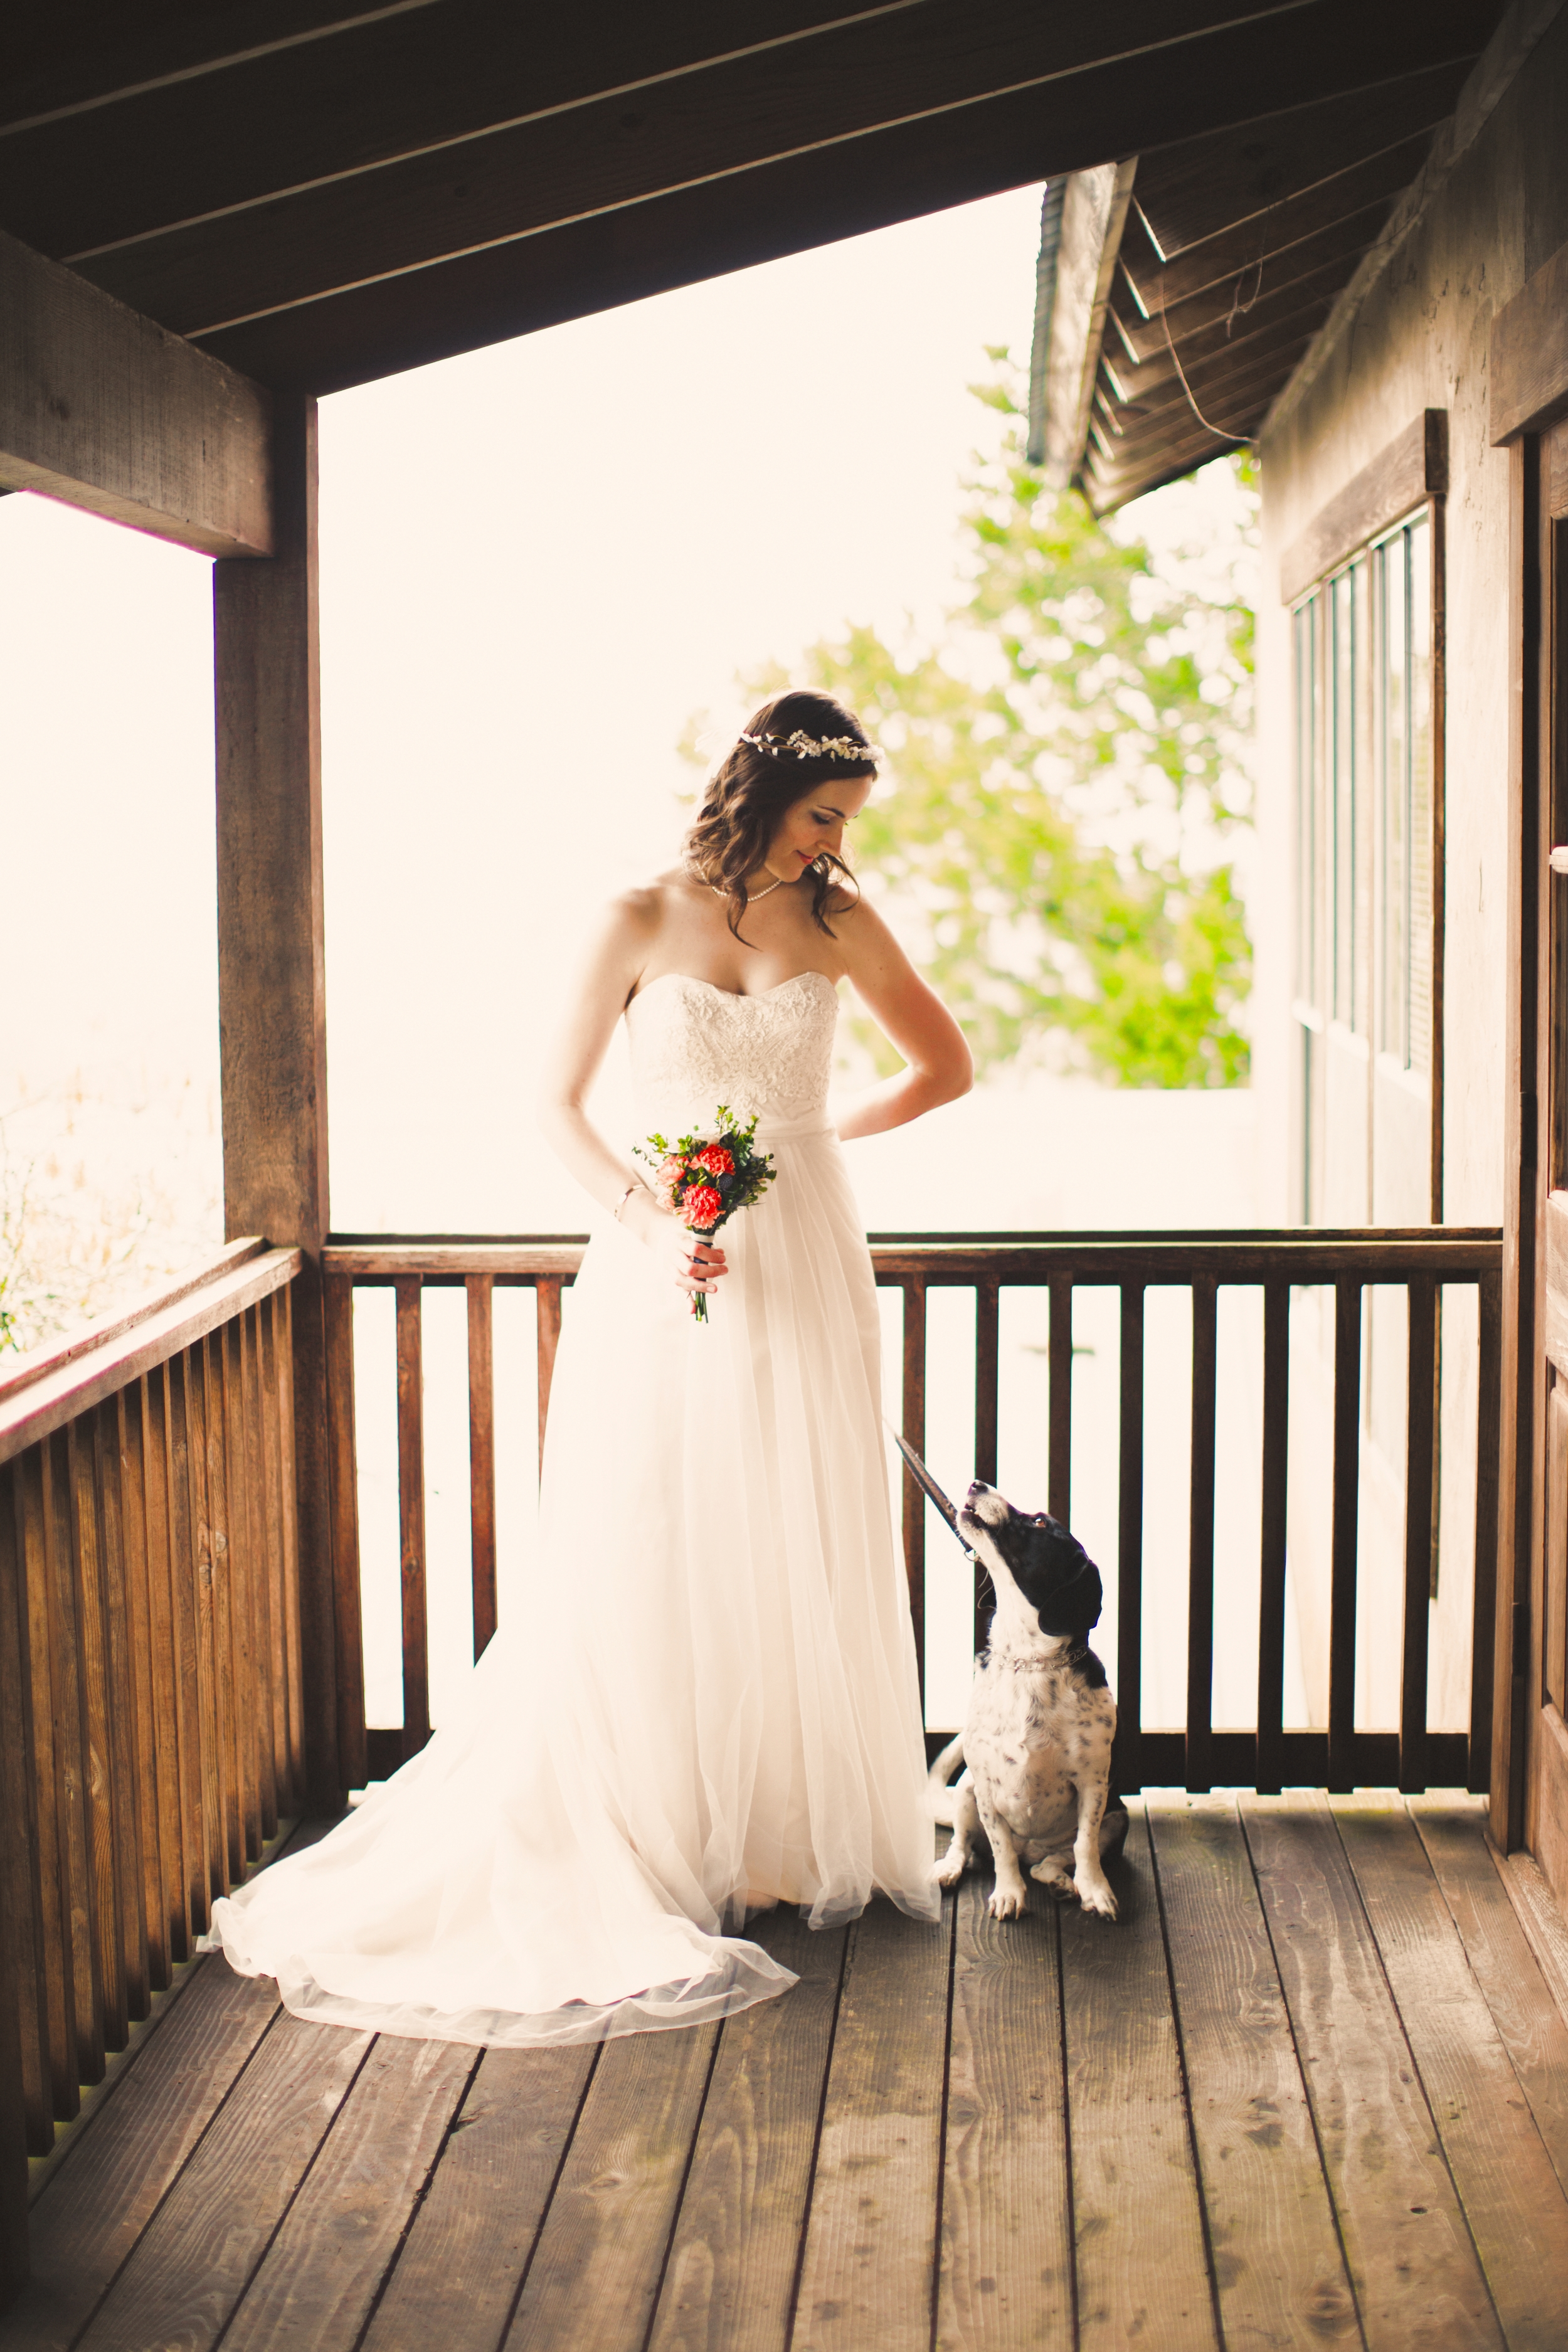 Austin Outdoor Wedding-House on the Hill-Bri Costello Photography-74.jpg